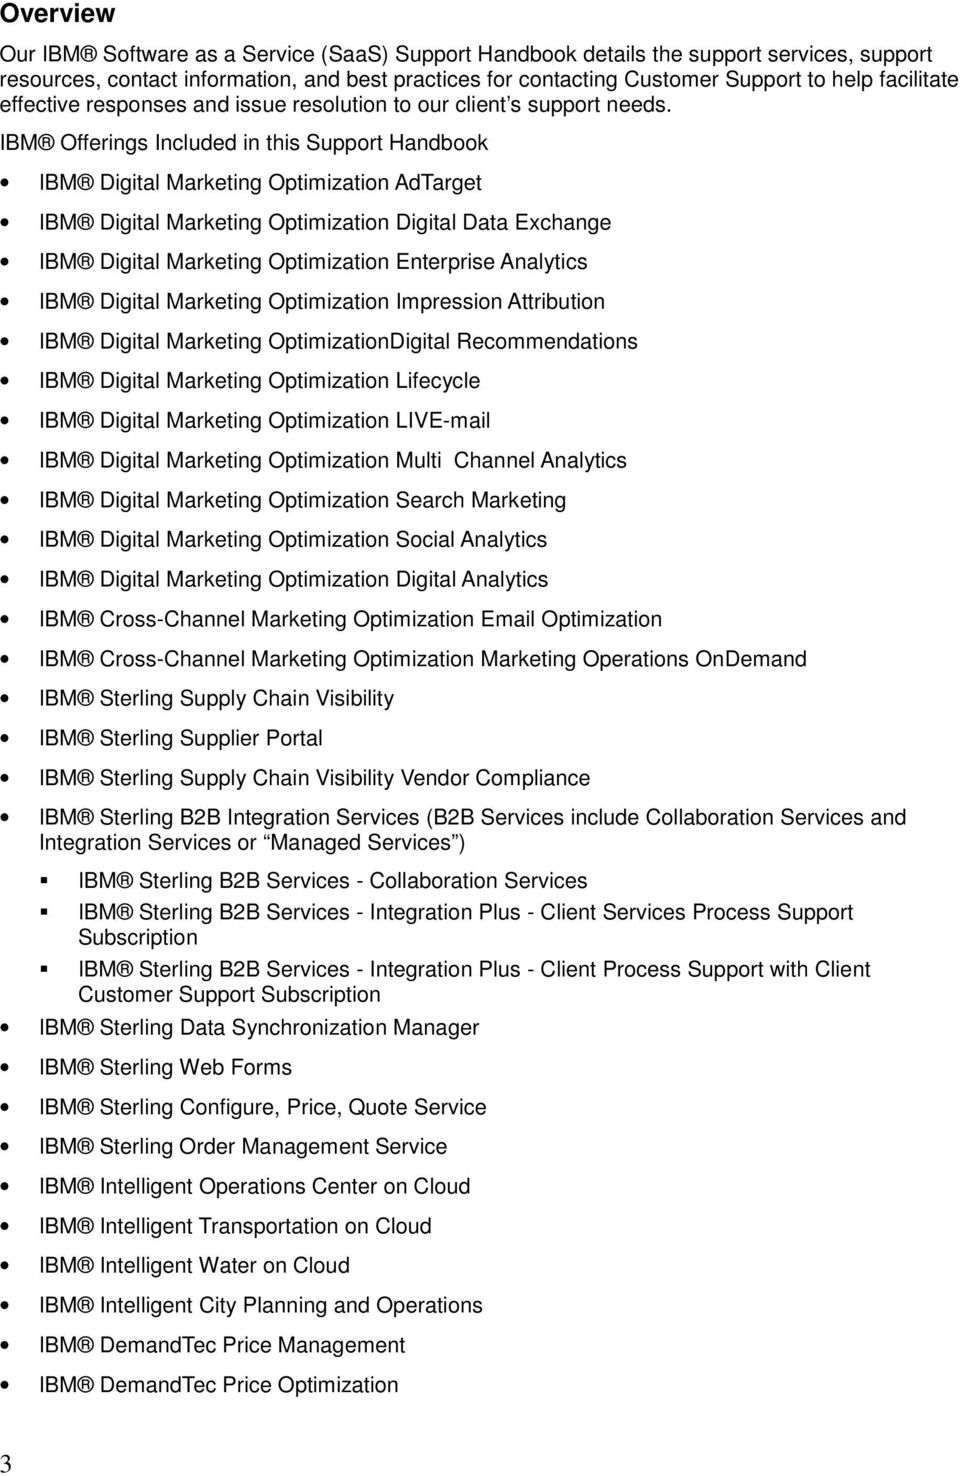 IBM Offerings Included in this Support Handbook IBM Digital Marketing Optimization AdTarget IBM Digital Marketing Optimization Digital Data Exchange IBM Digital Marketing Optimization Enterprise